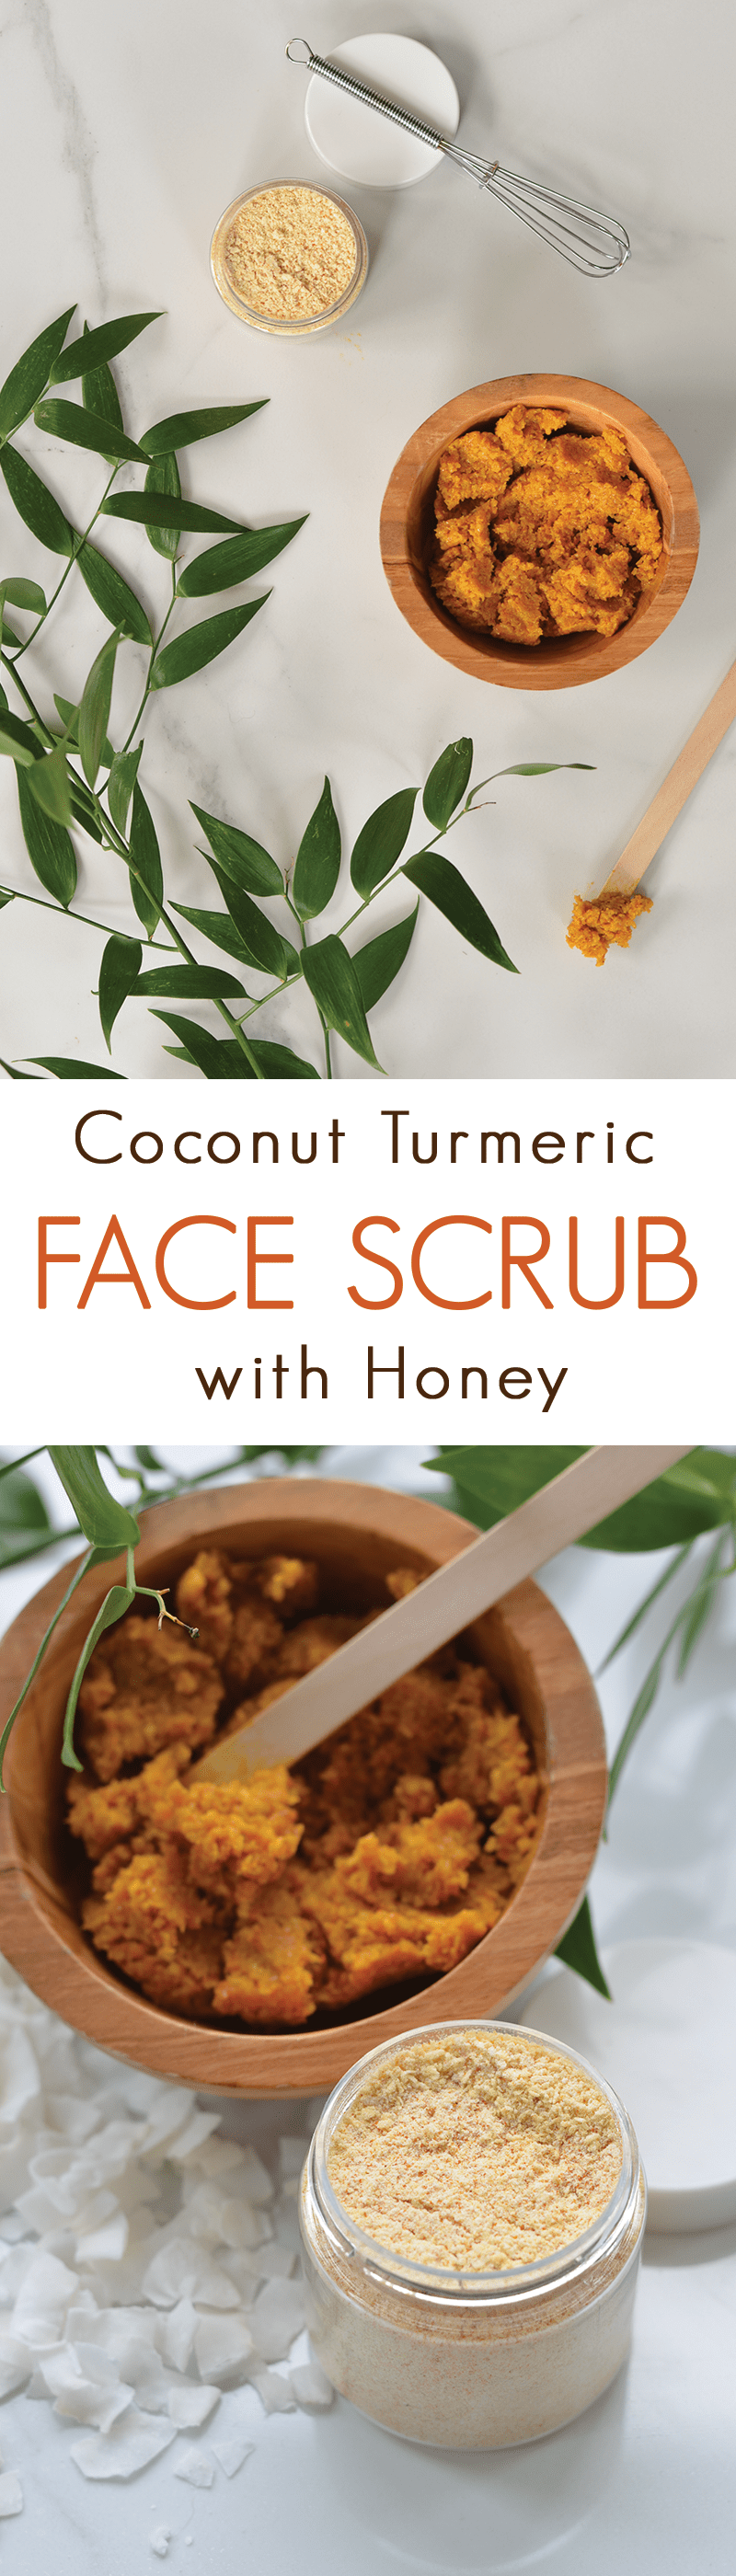 Make Your Own Coconut Honey Turmeric Face Scrub - a gentle facial scrub made with natural ingredients